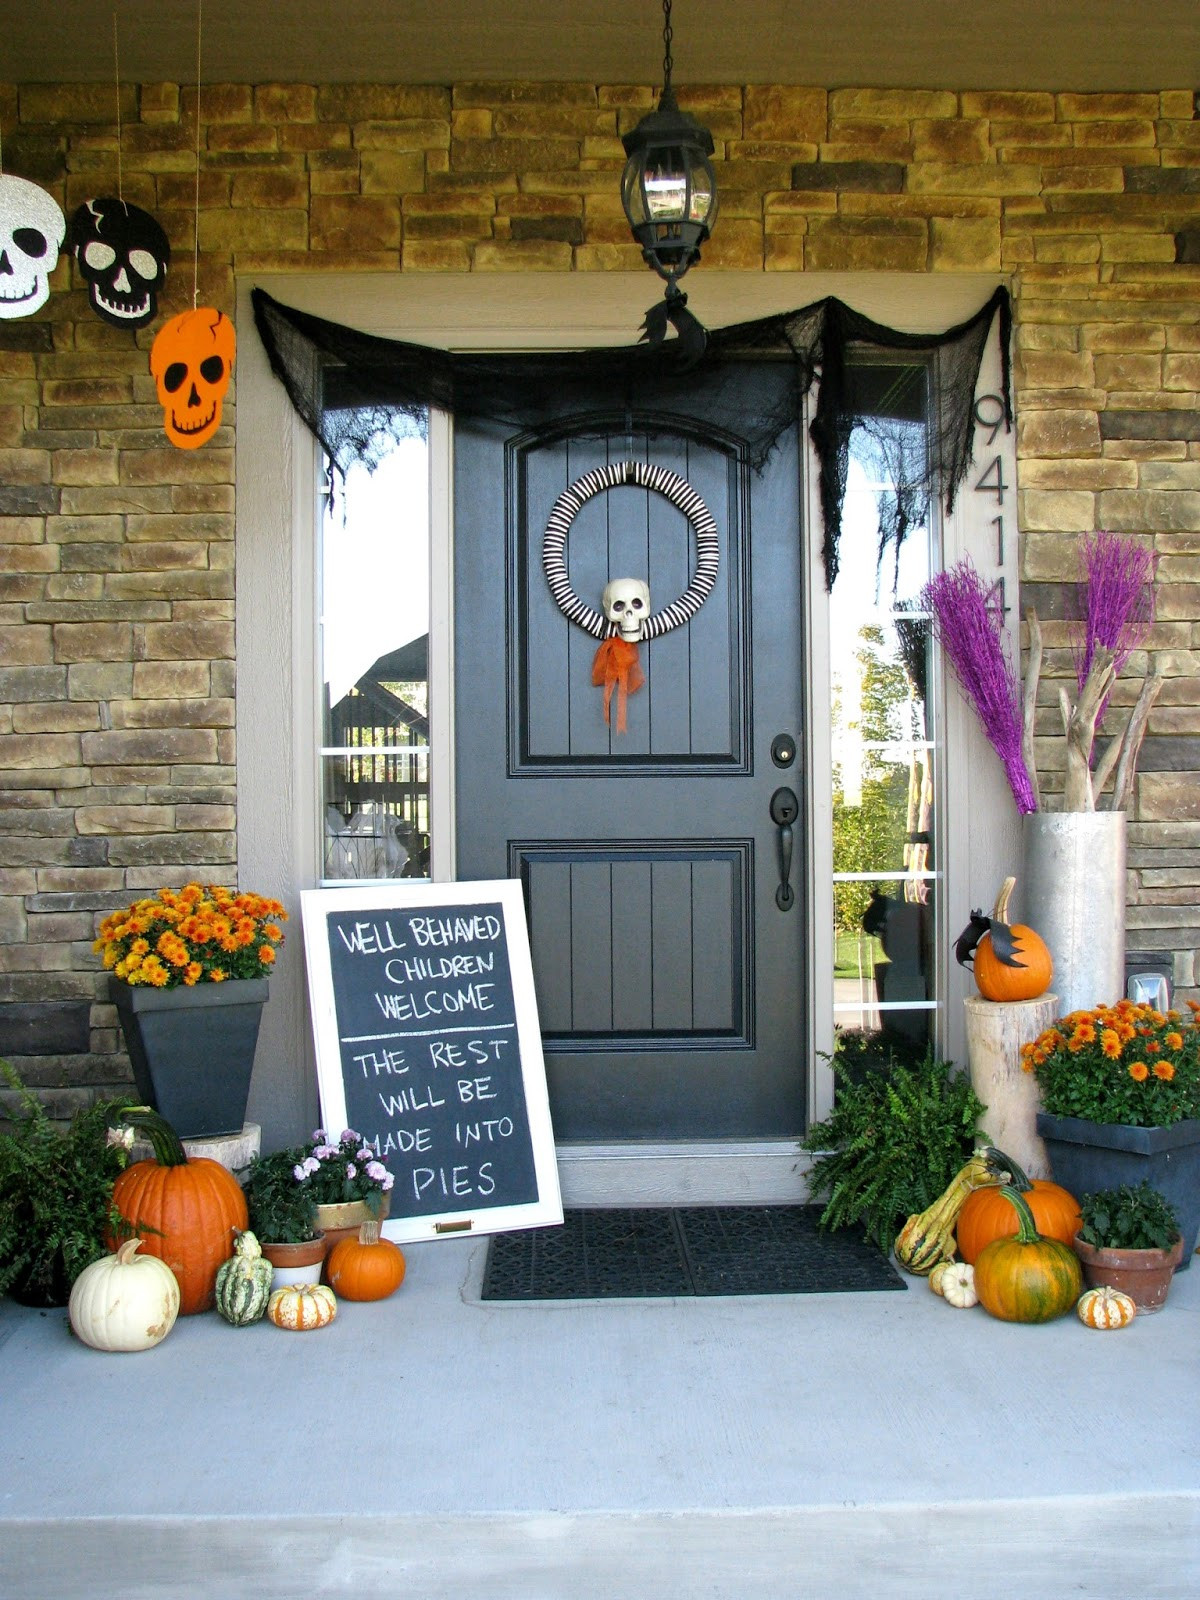 Diy Halloween Porch Decorations  13 Halloween Porch Ideas Lolly Jane